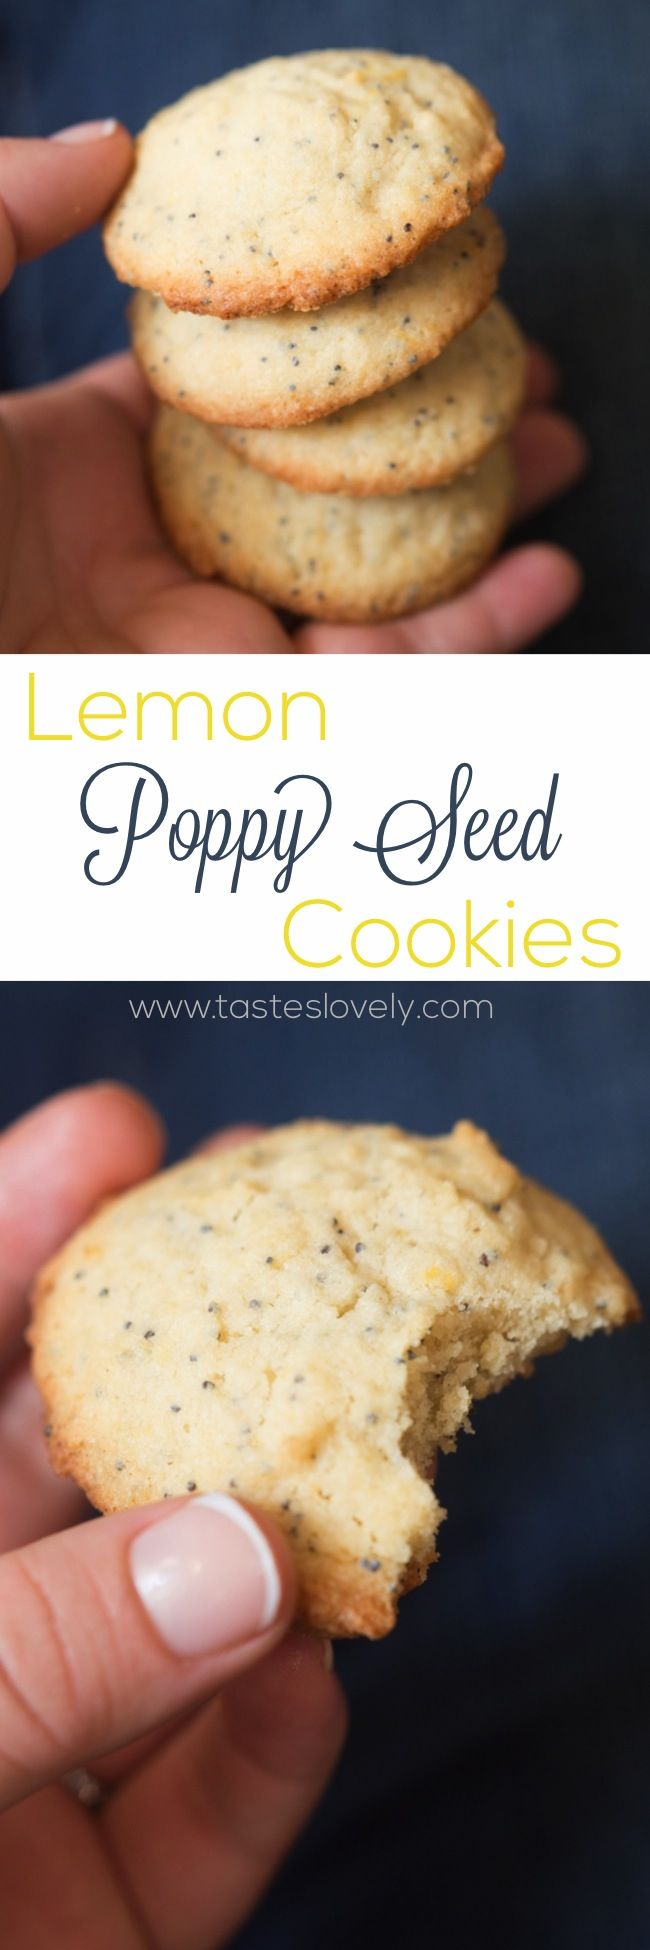 Lemon Poppy Seed Cookies. A light and lemony sweet treat!